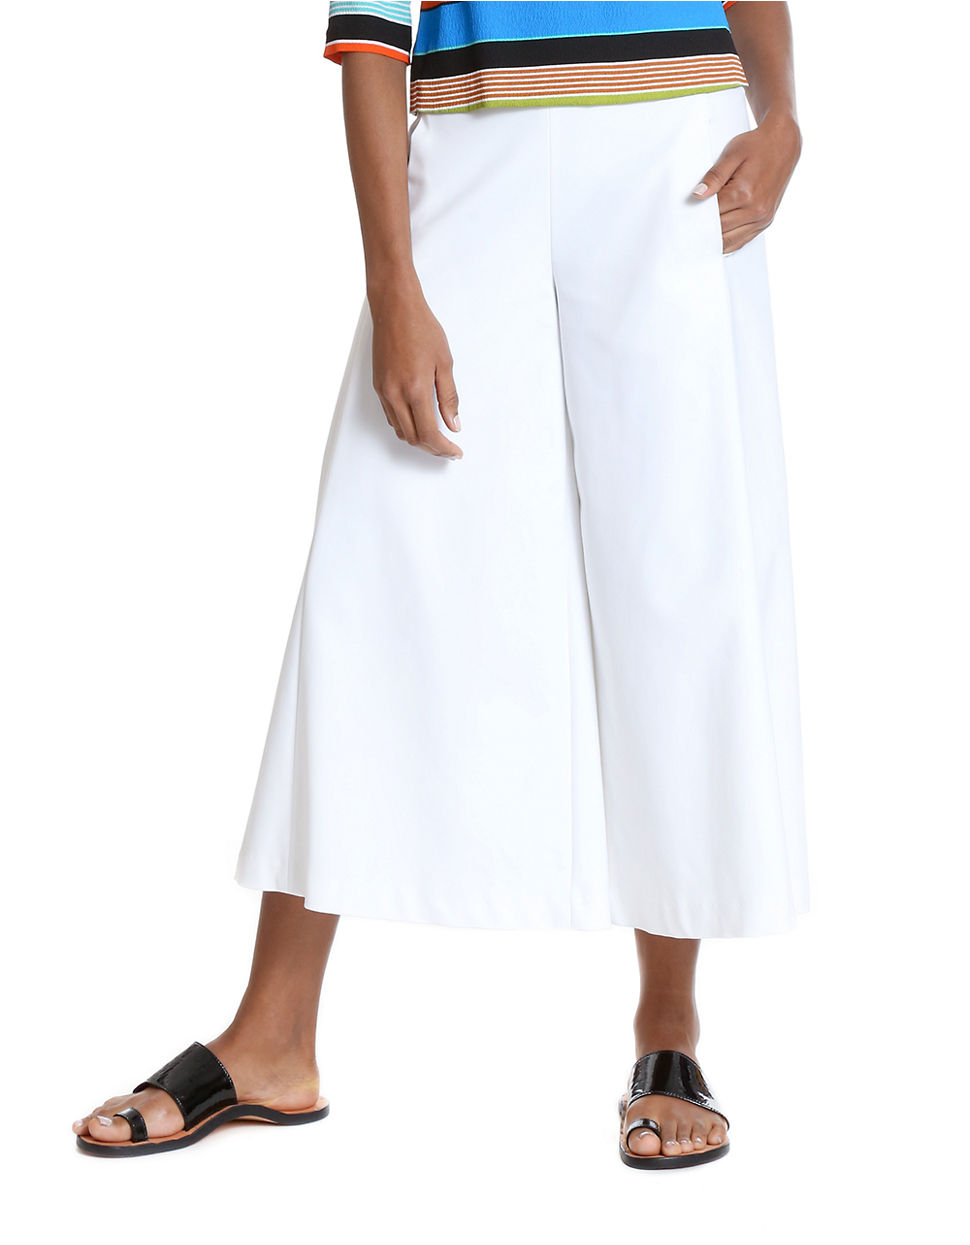 Tracy reese clean culottes lyst for How to clean white dress shirts